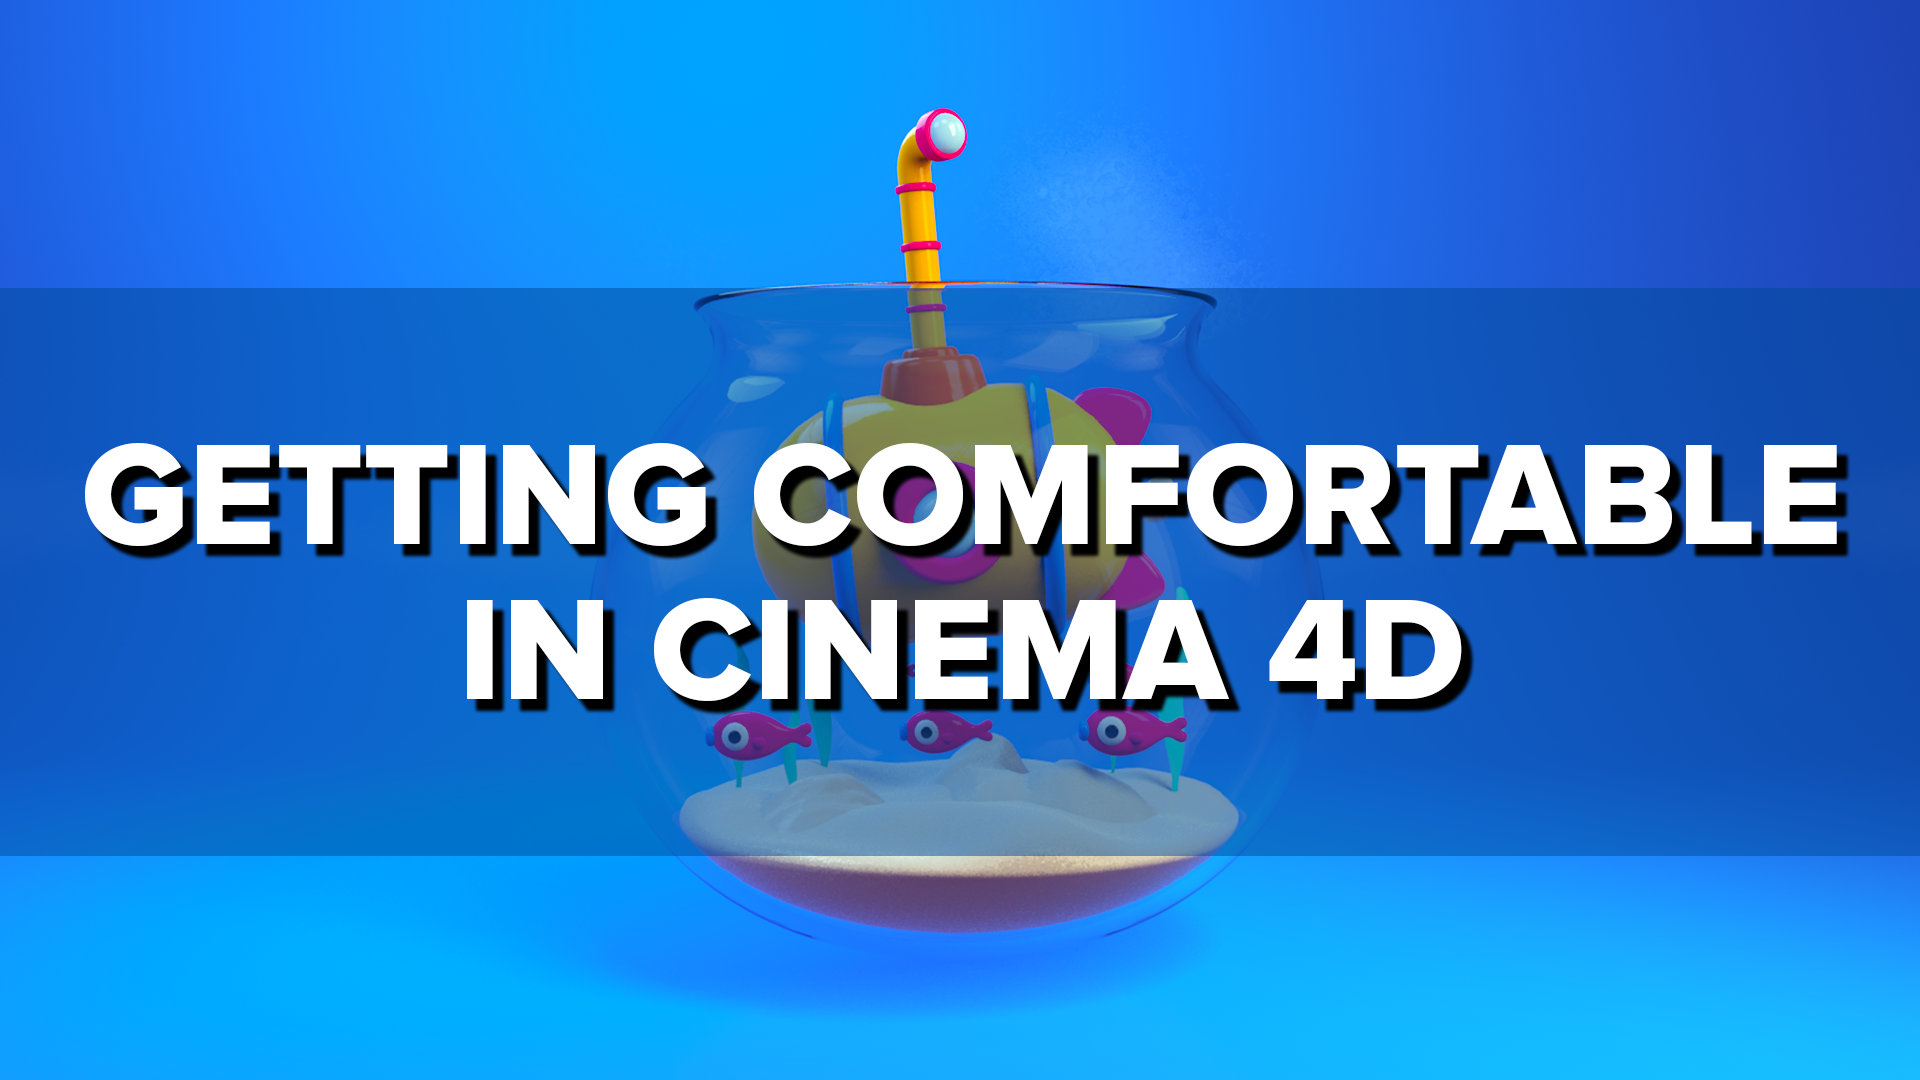 Getting Started with Cinema 4D, Part 02: Getting Comfortable in Cinema 4D